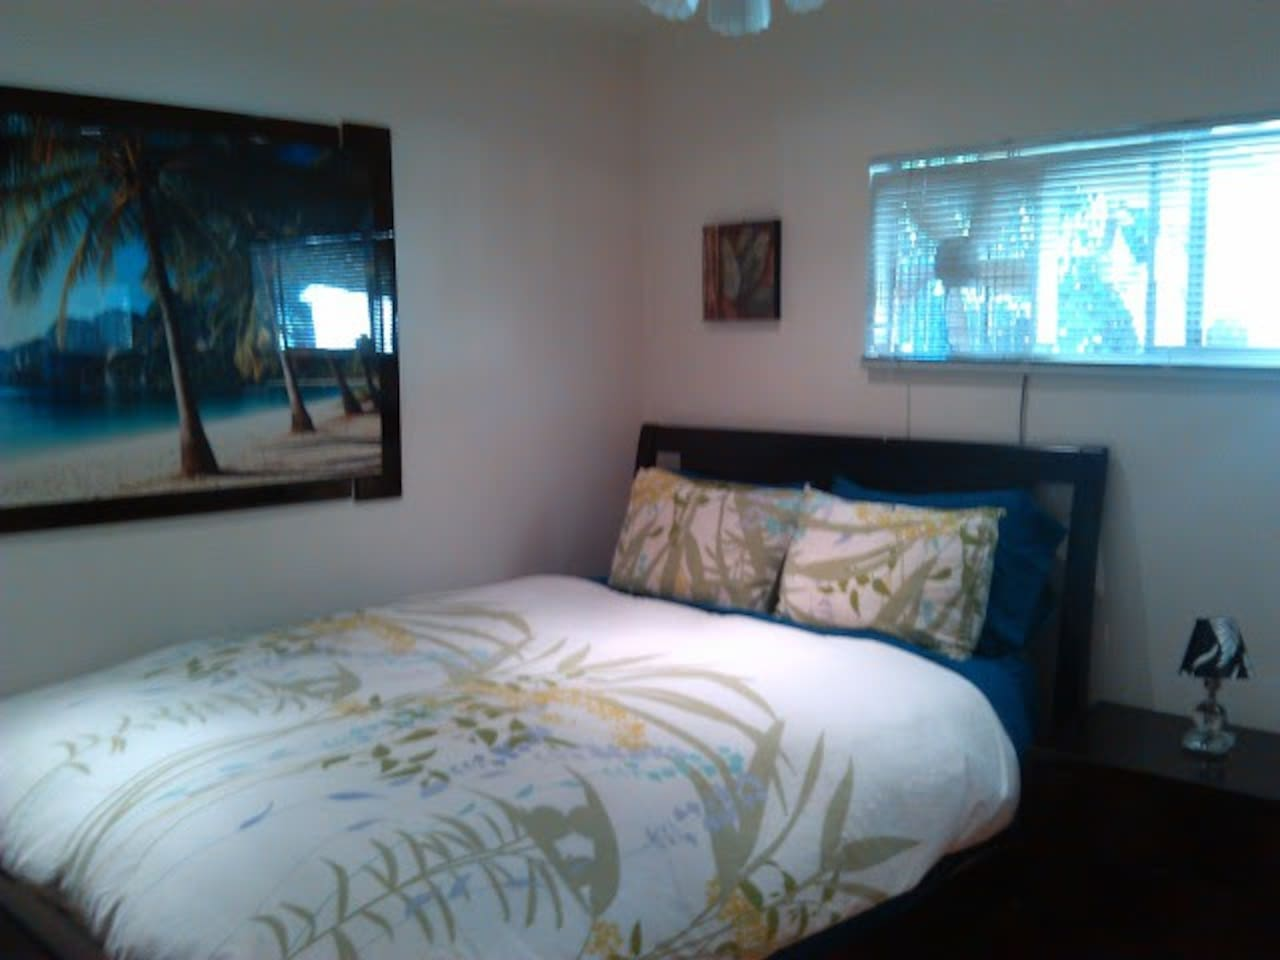 Lovely queen bedroom with tropical wall art and decor